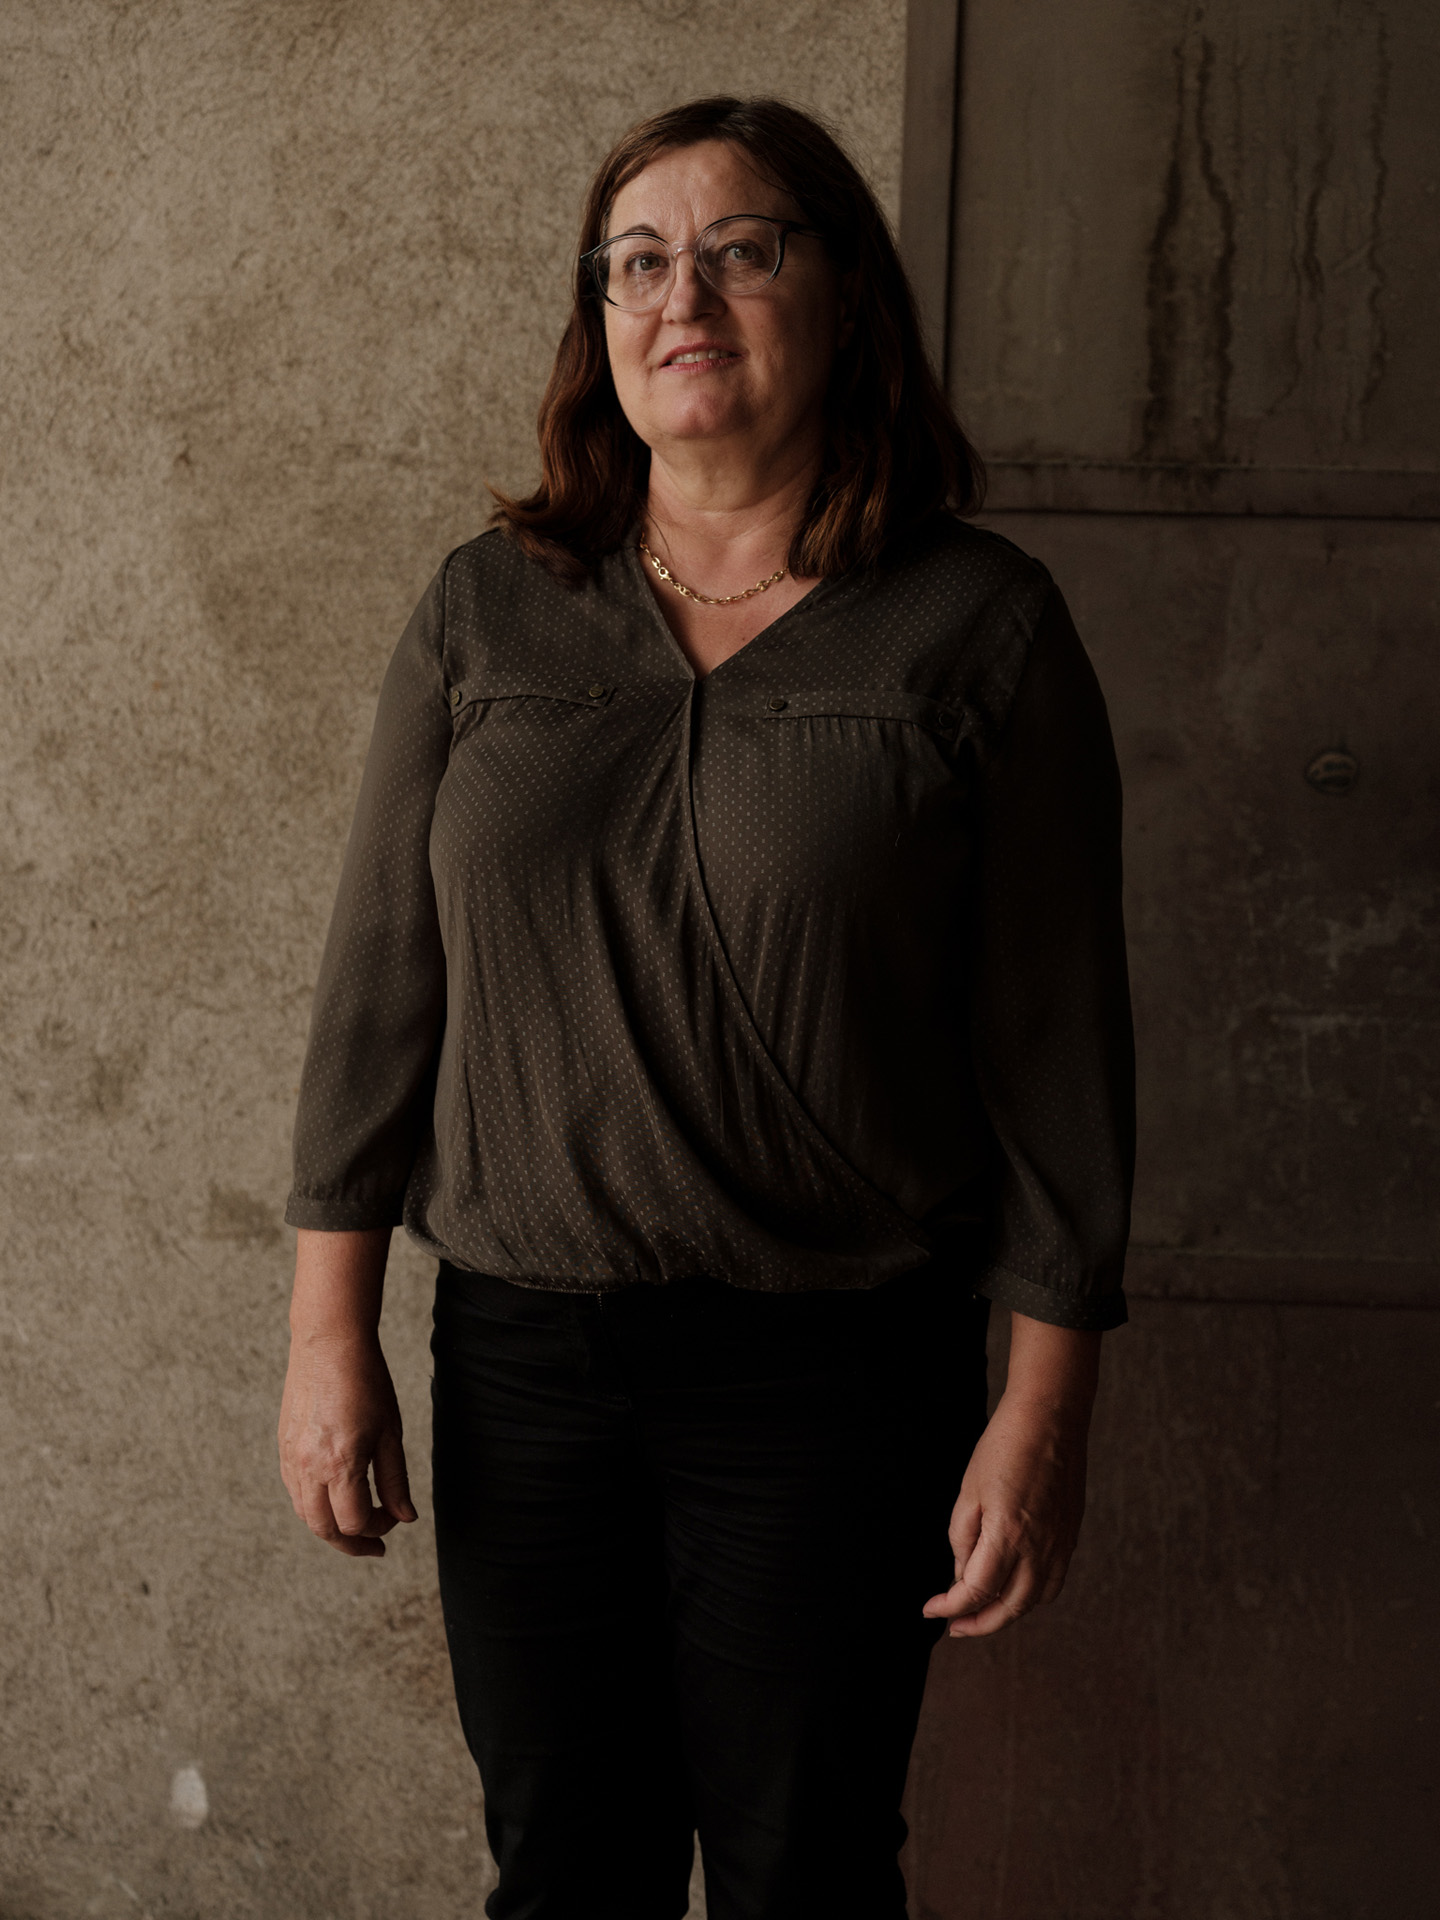 portrait of lady in front of concrete wall dressed in brown by Alexi Hobbs in Auvergne for Reflets de France